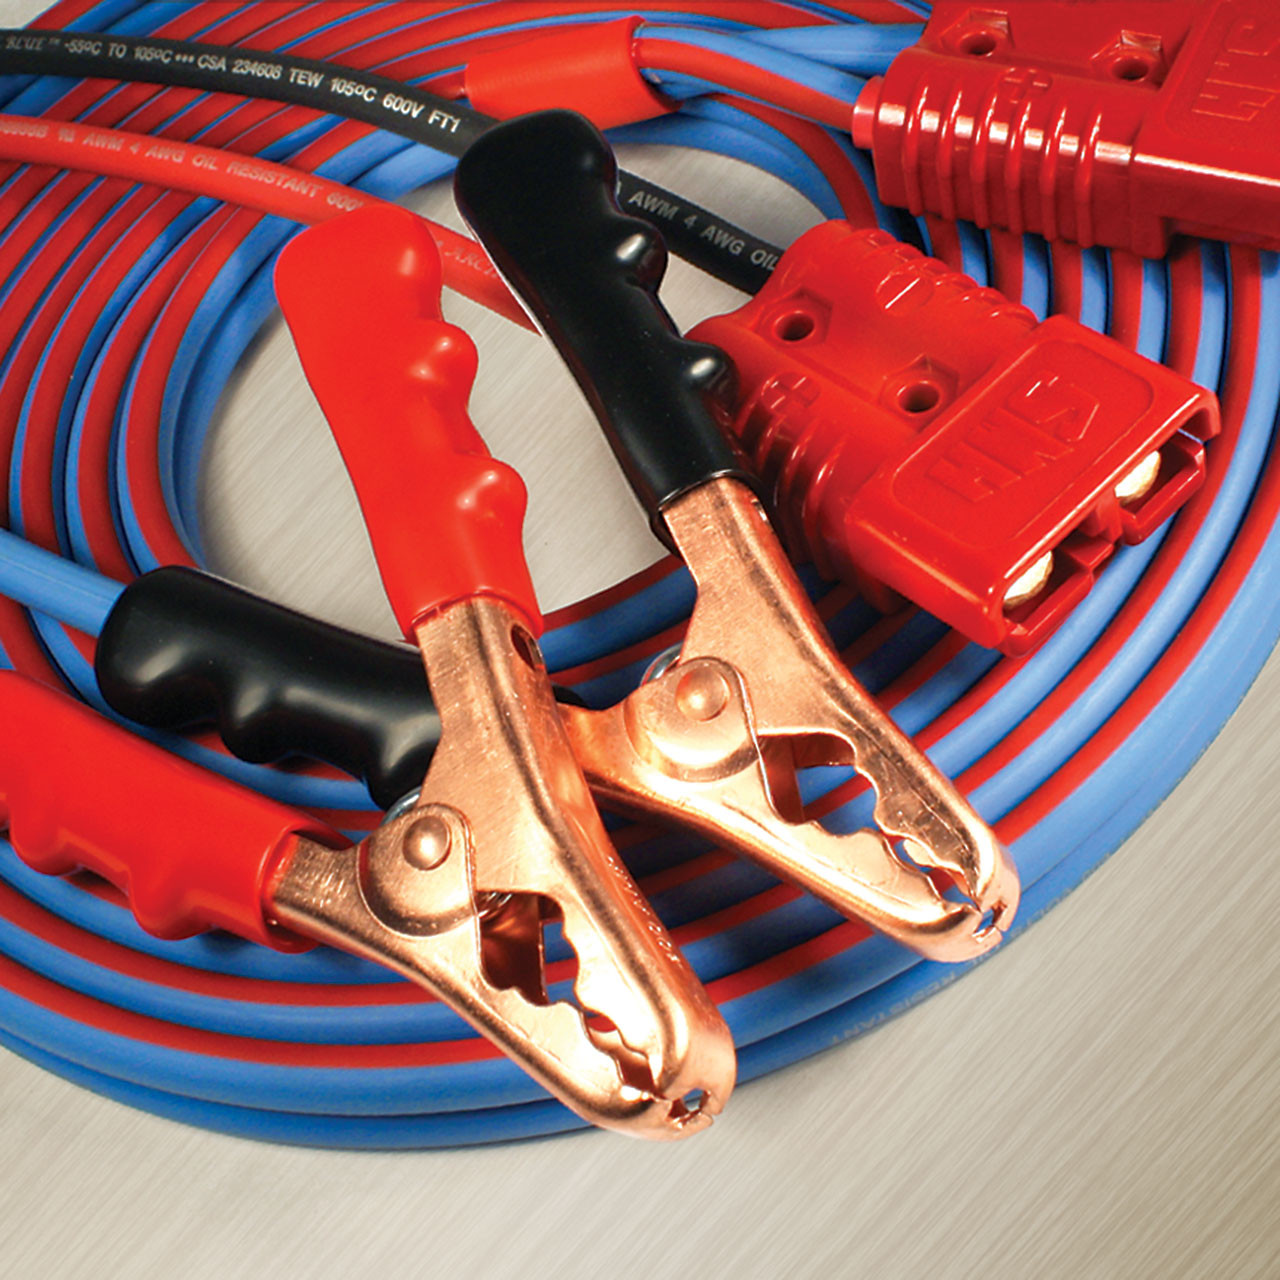 The very best jumper cables available anywhere!